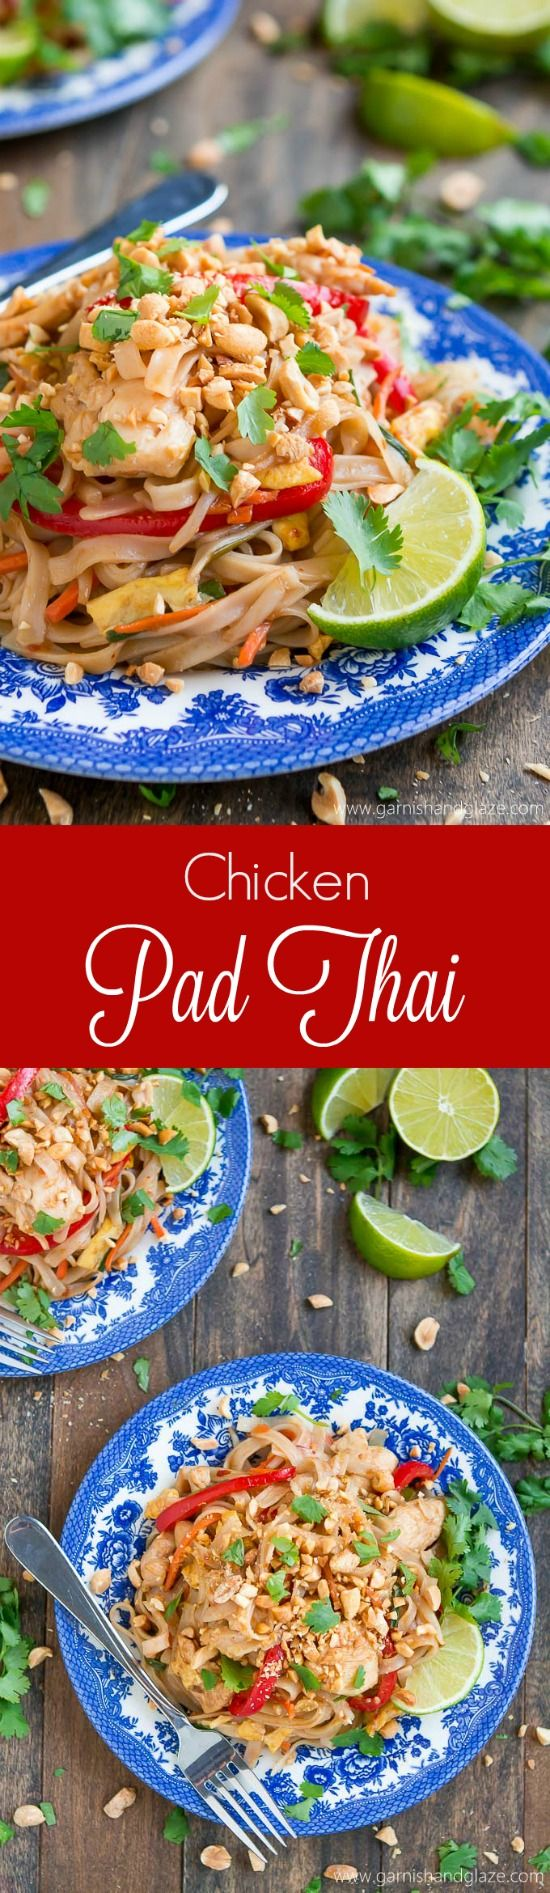 Enjoy Thai food at home with this quick, easy, and veggie filled Chicken Pad Thai.